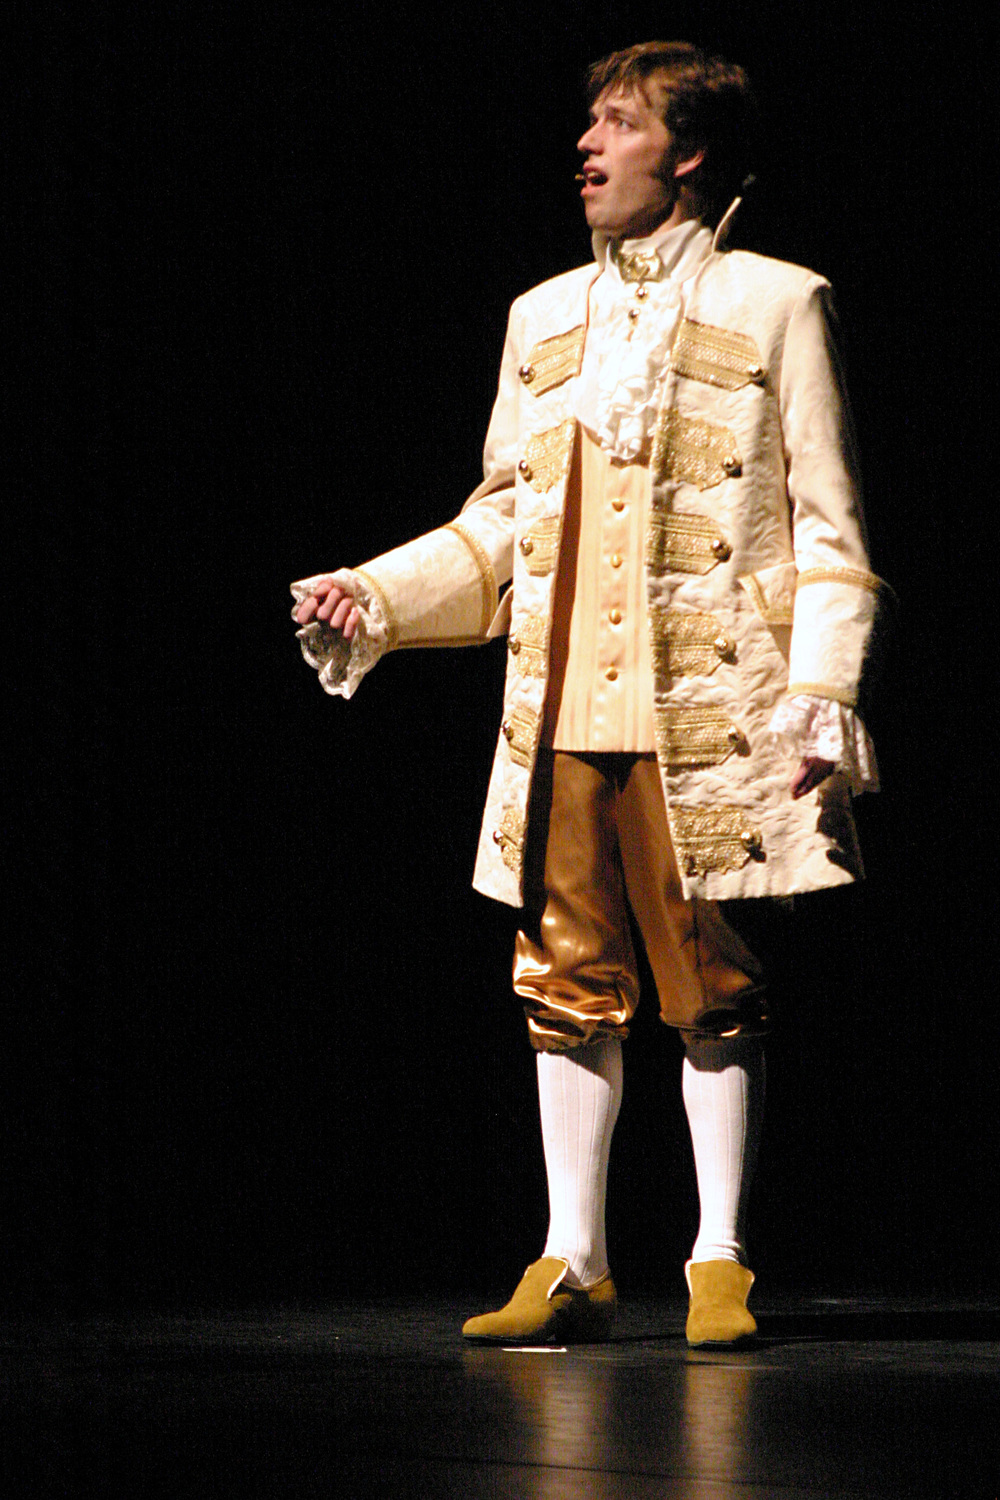 125 - The Scarlet Pimpernel 2005 - Generale.jpg